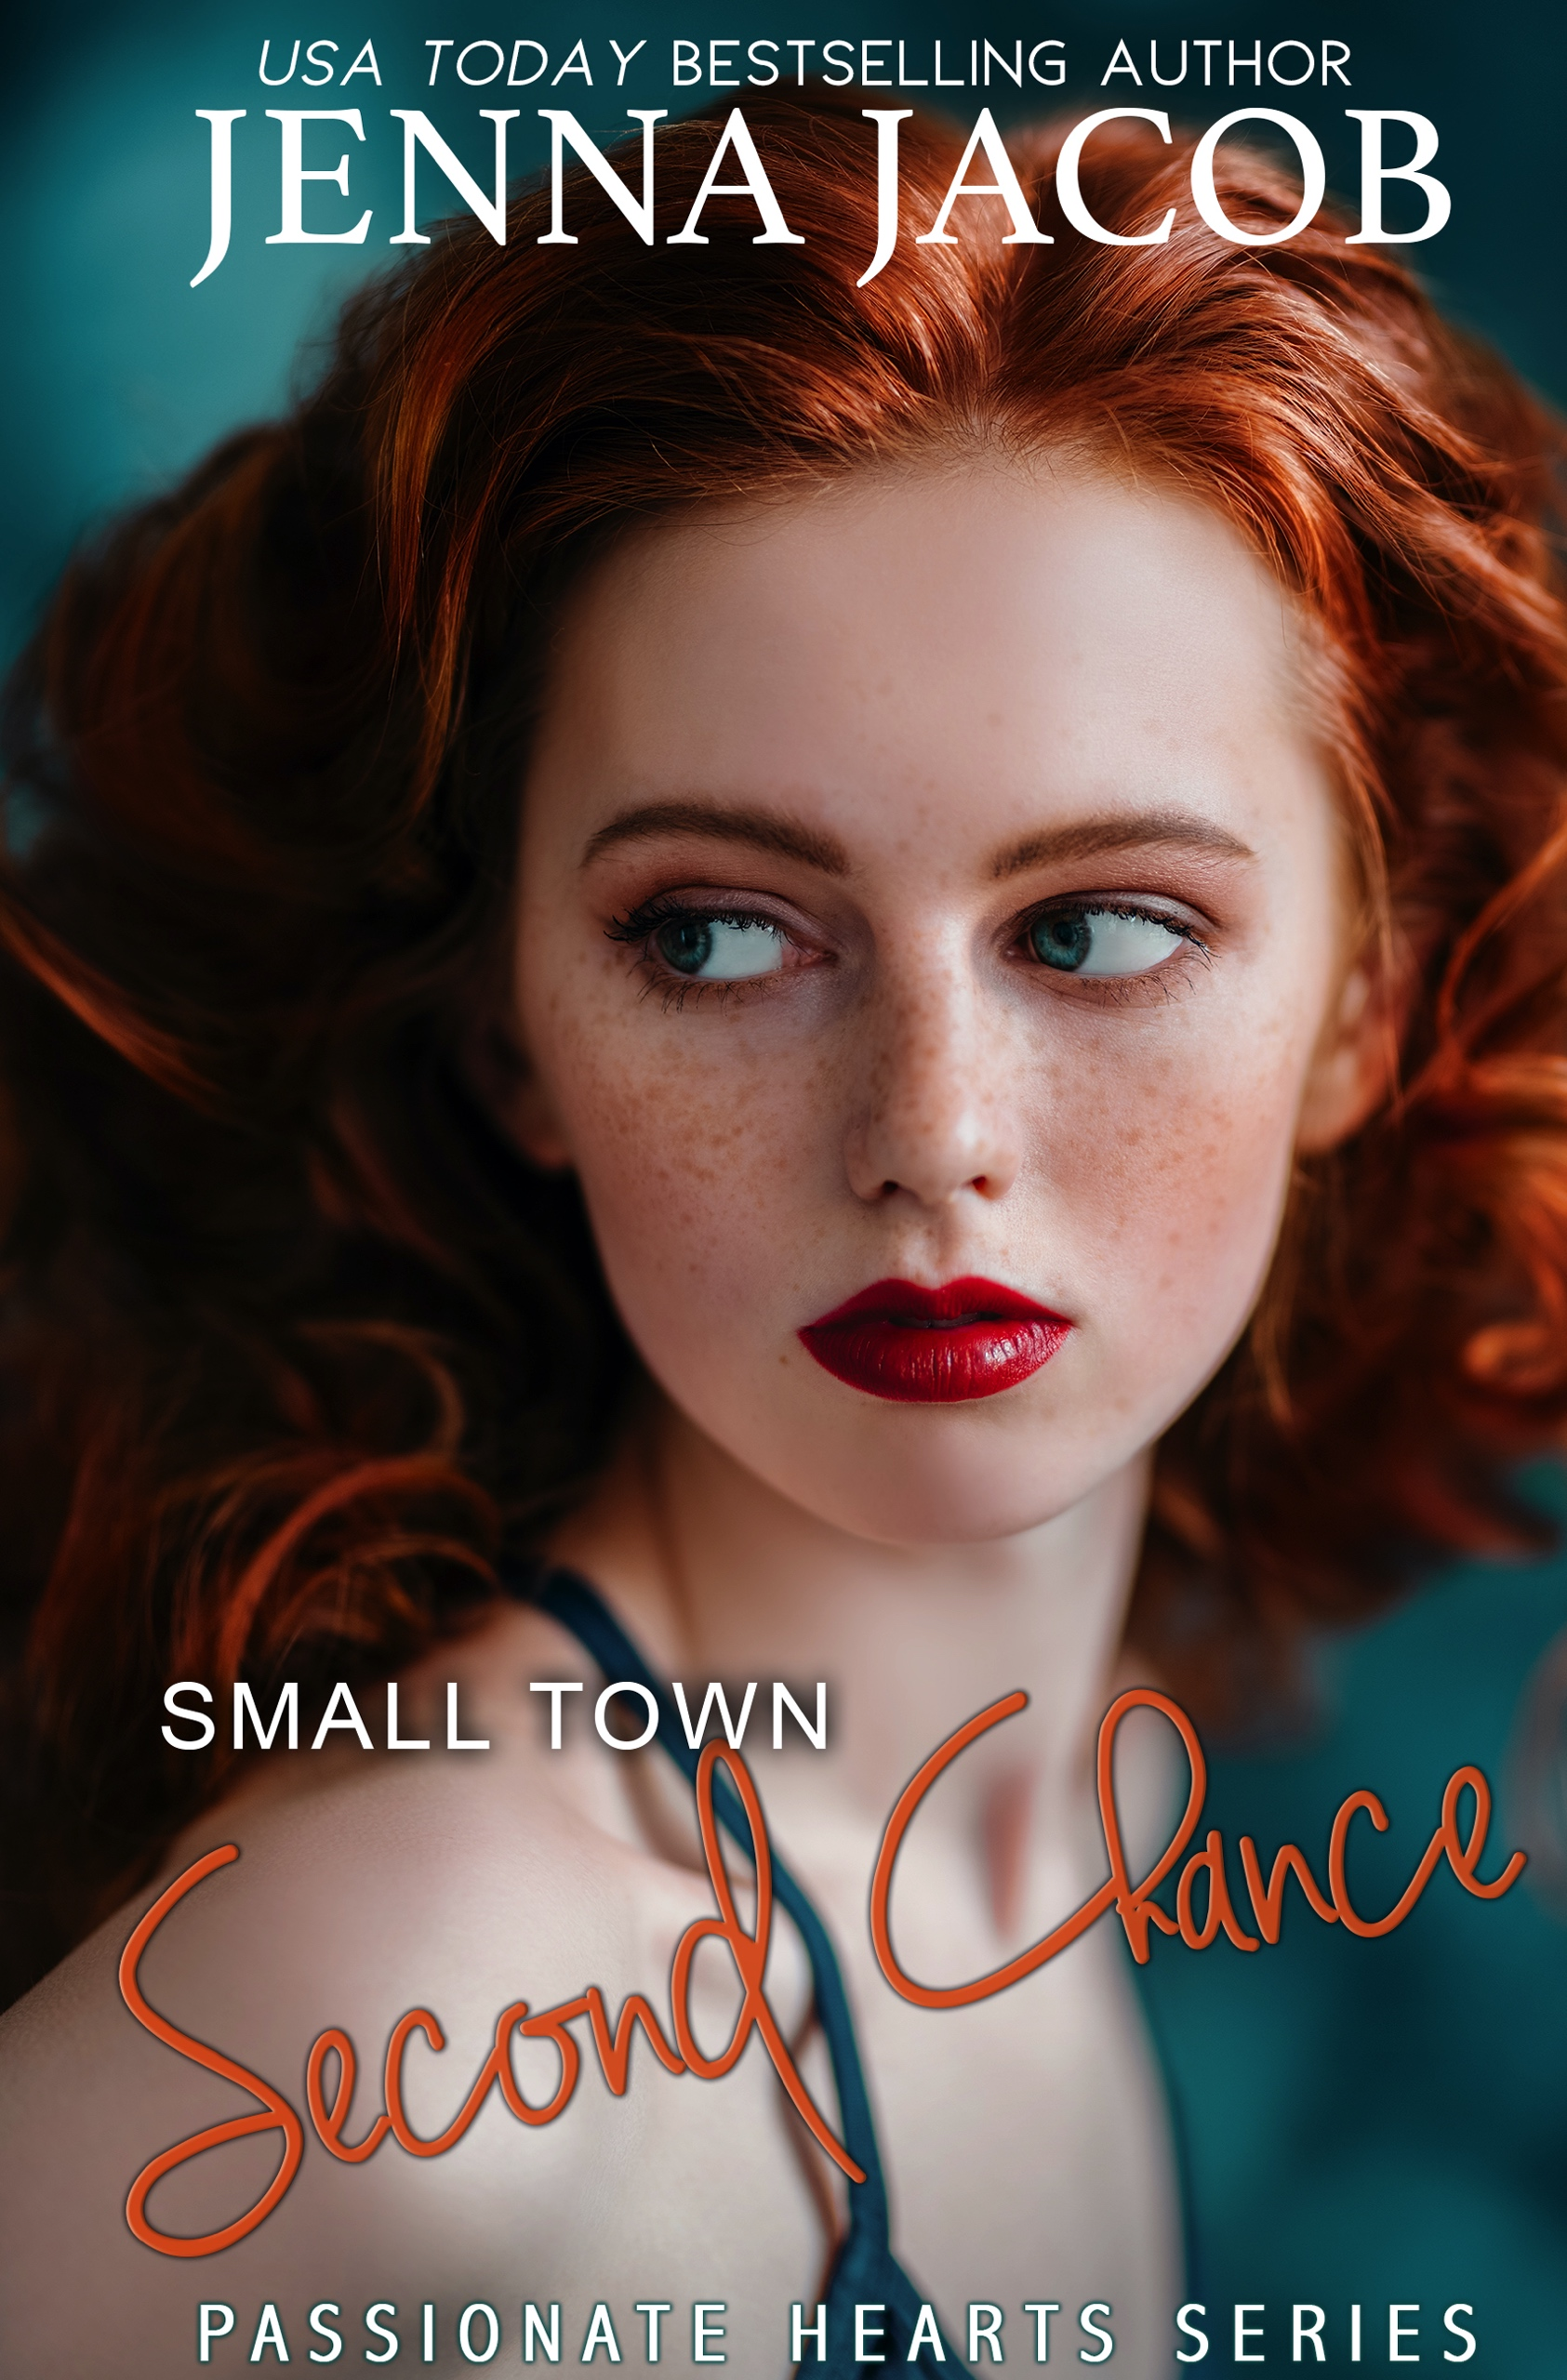 Small Town Second Chance